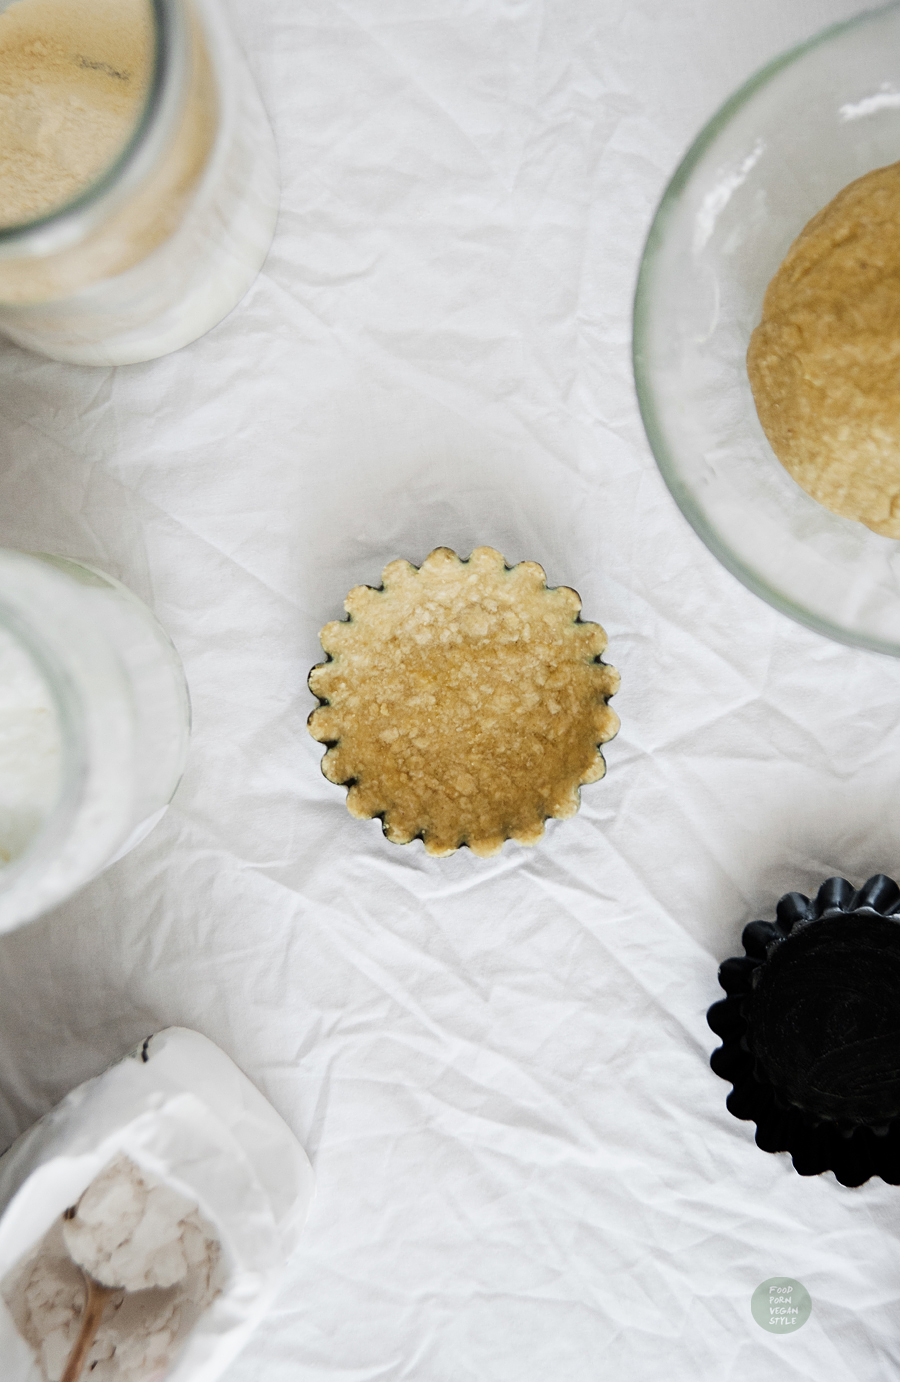 Vegan gluten-free pie crust (sweet and savory version)